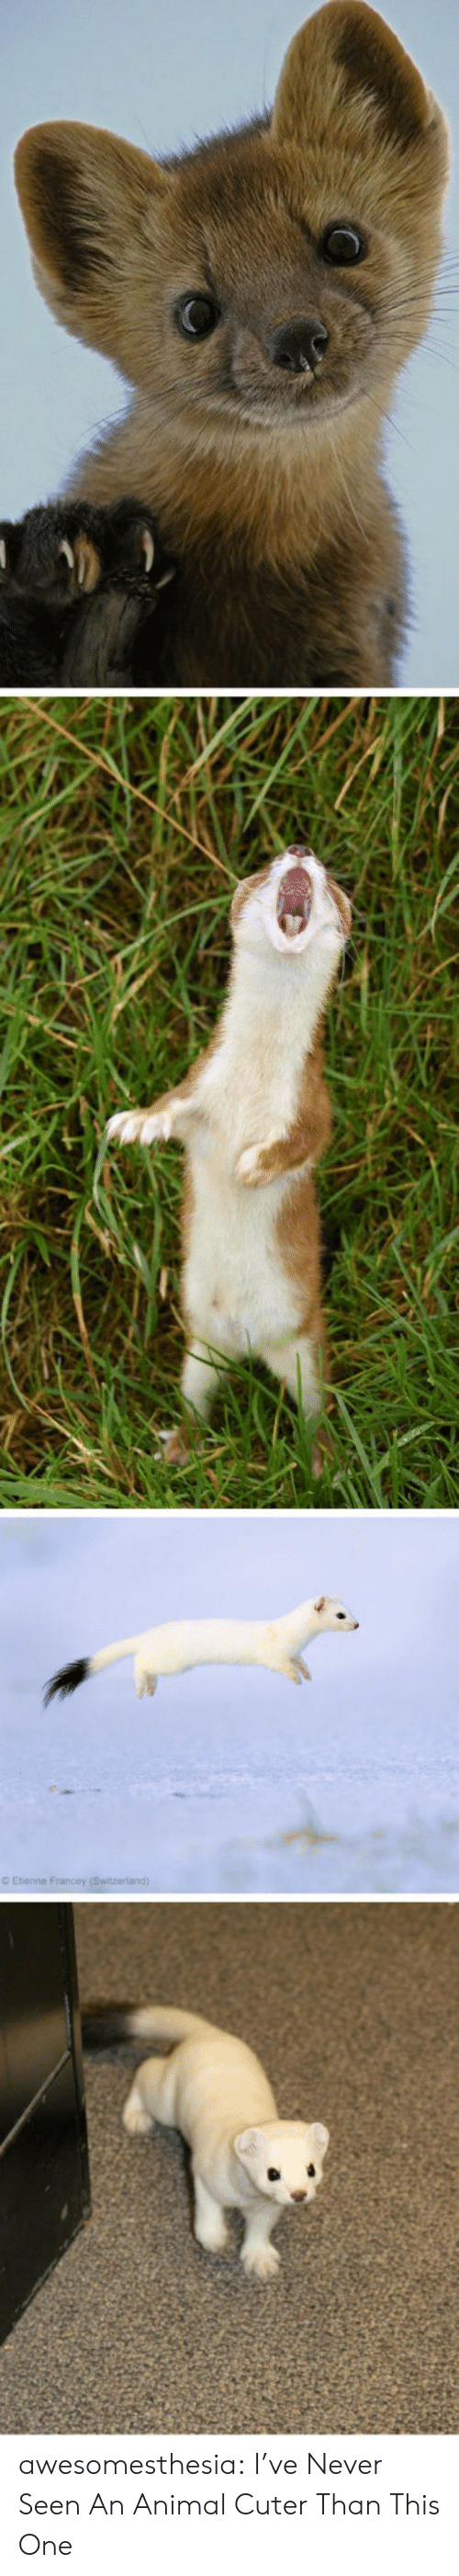 Tumblr, Animal, and Blog: O Etenne Francey (Switzeriand) awesomesthesia:  I've Never Seen An Animal Cuter Than This One